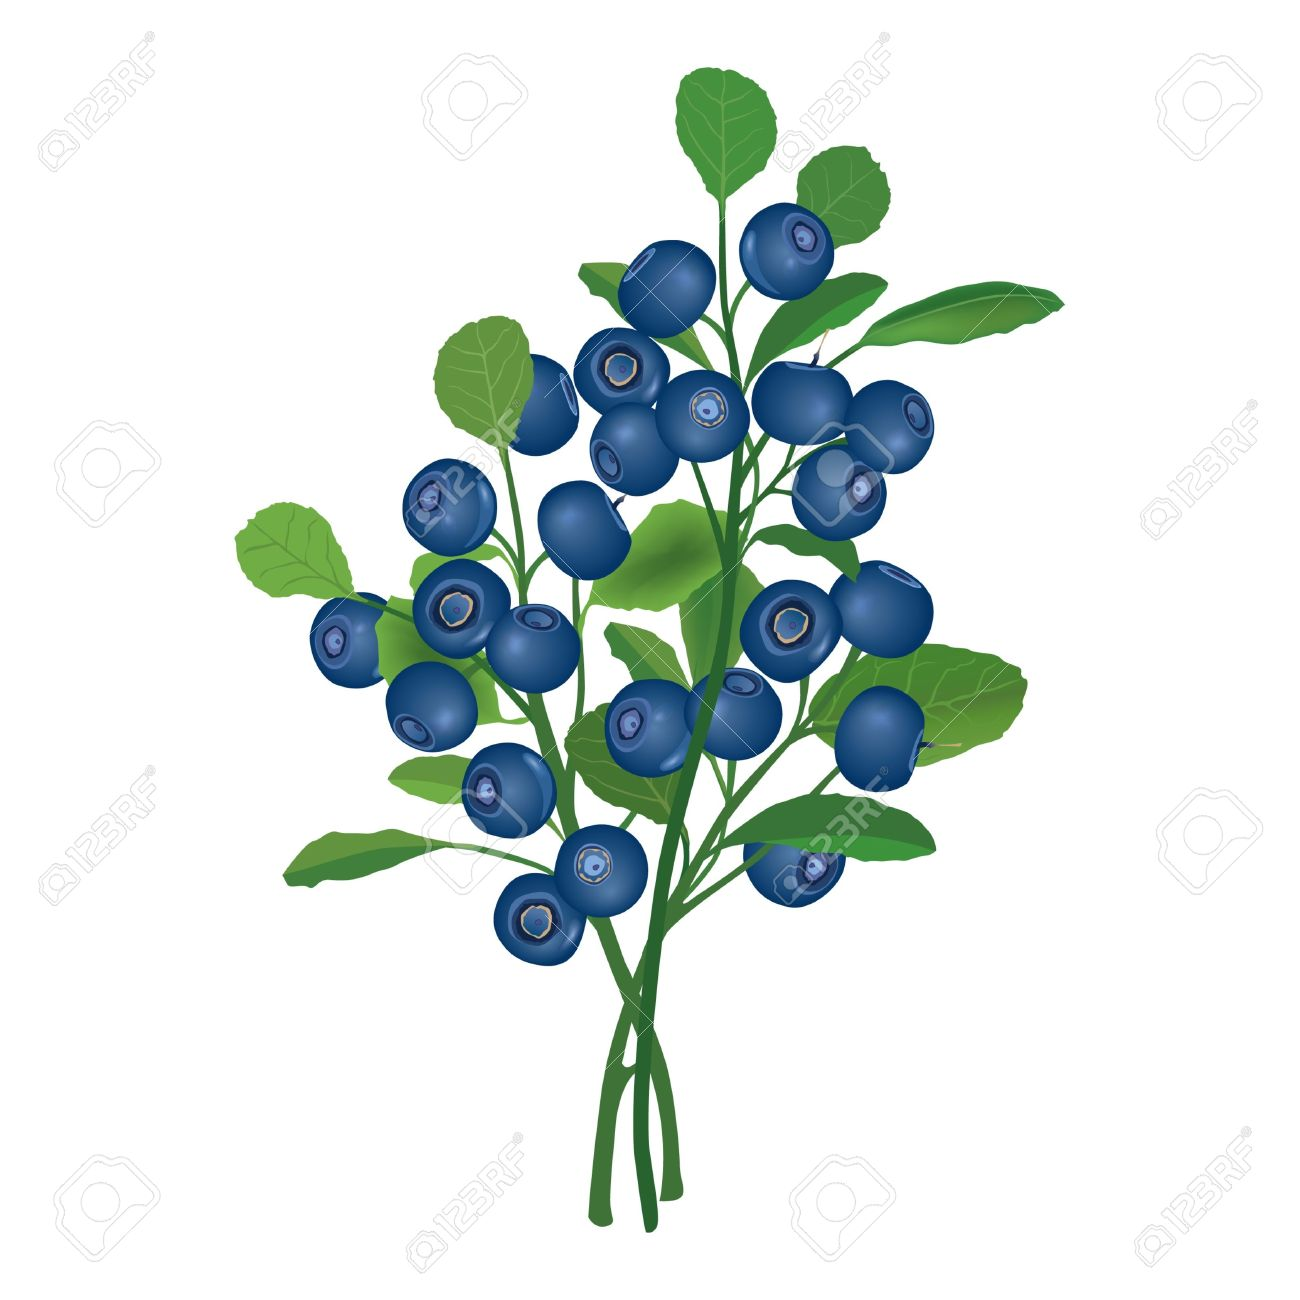 Drawn rose bush sketching Bush Blueberry Clipart cliparts Berry